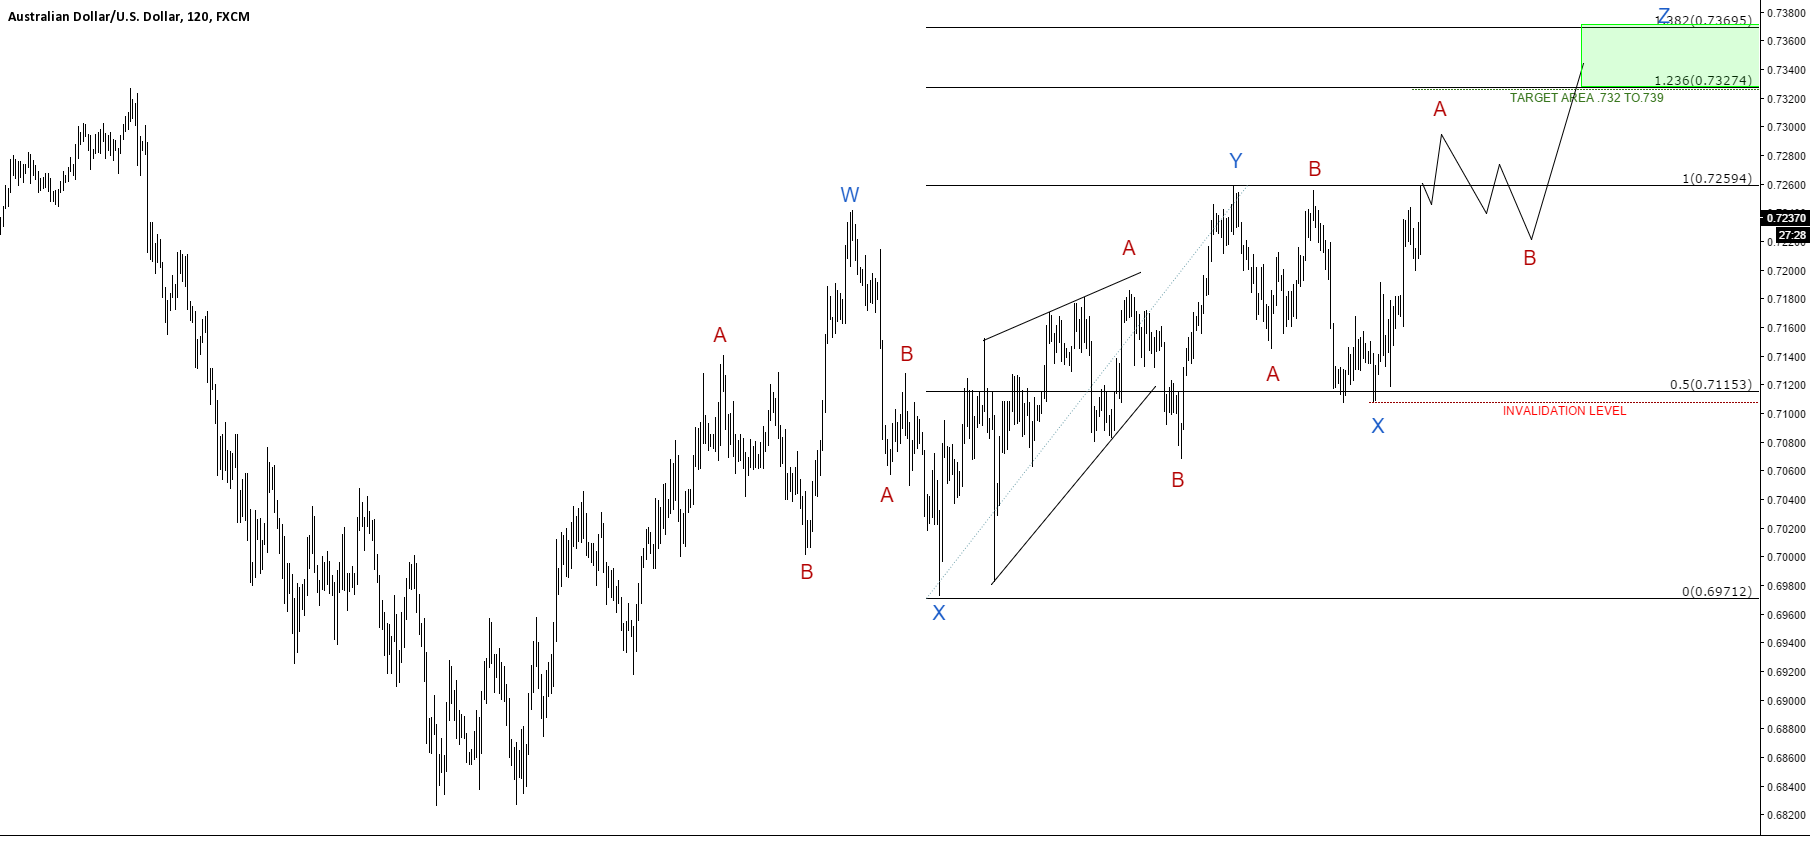 AUDUSD update: looking like a triple correction